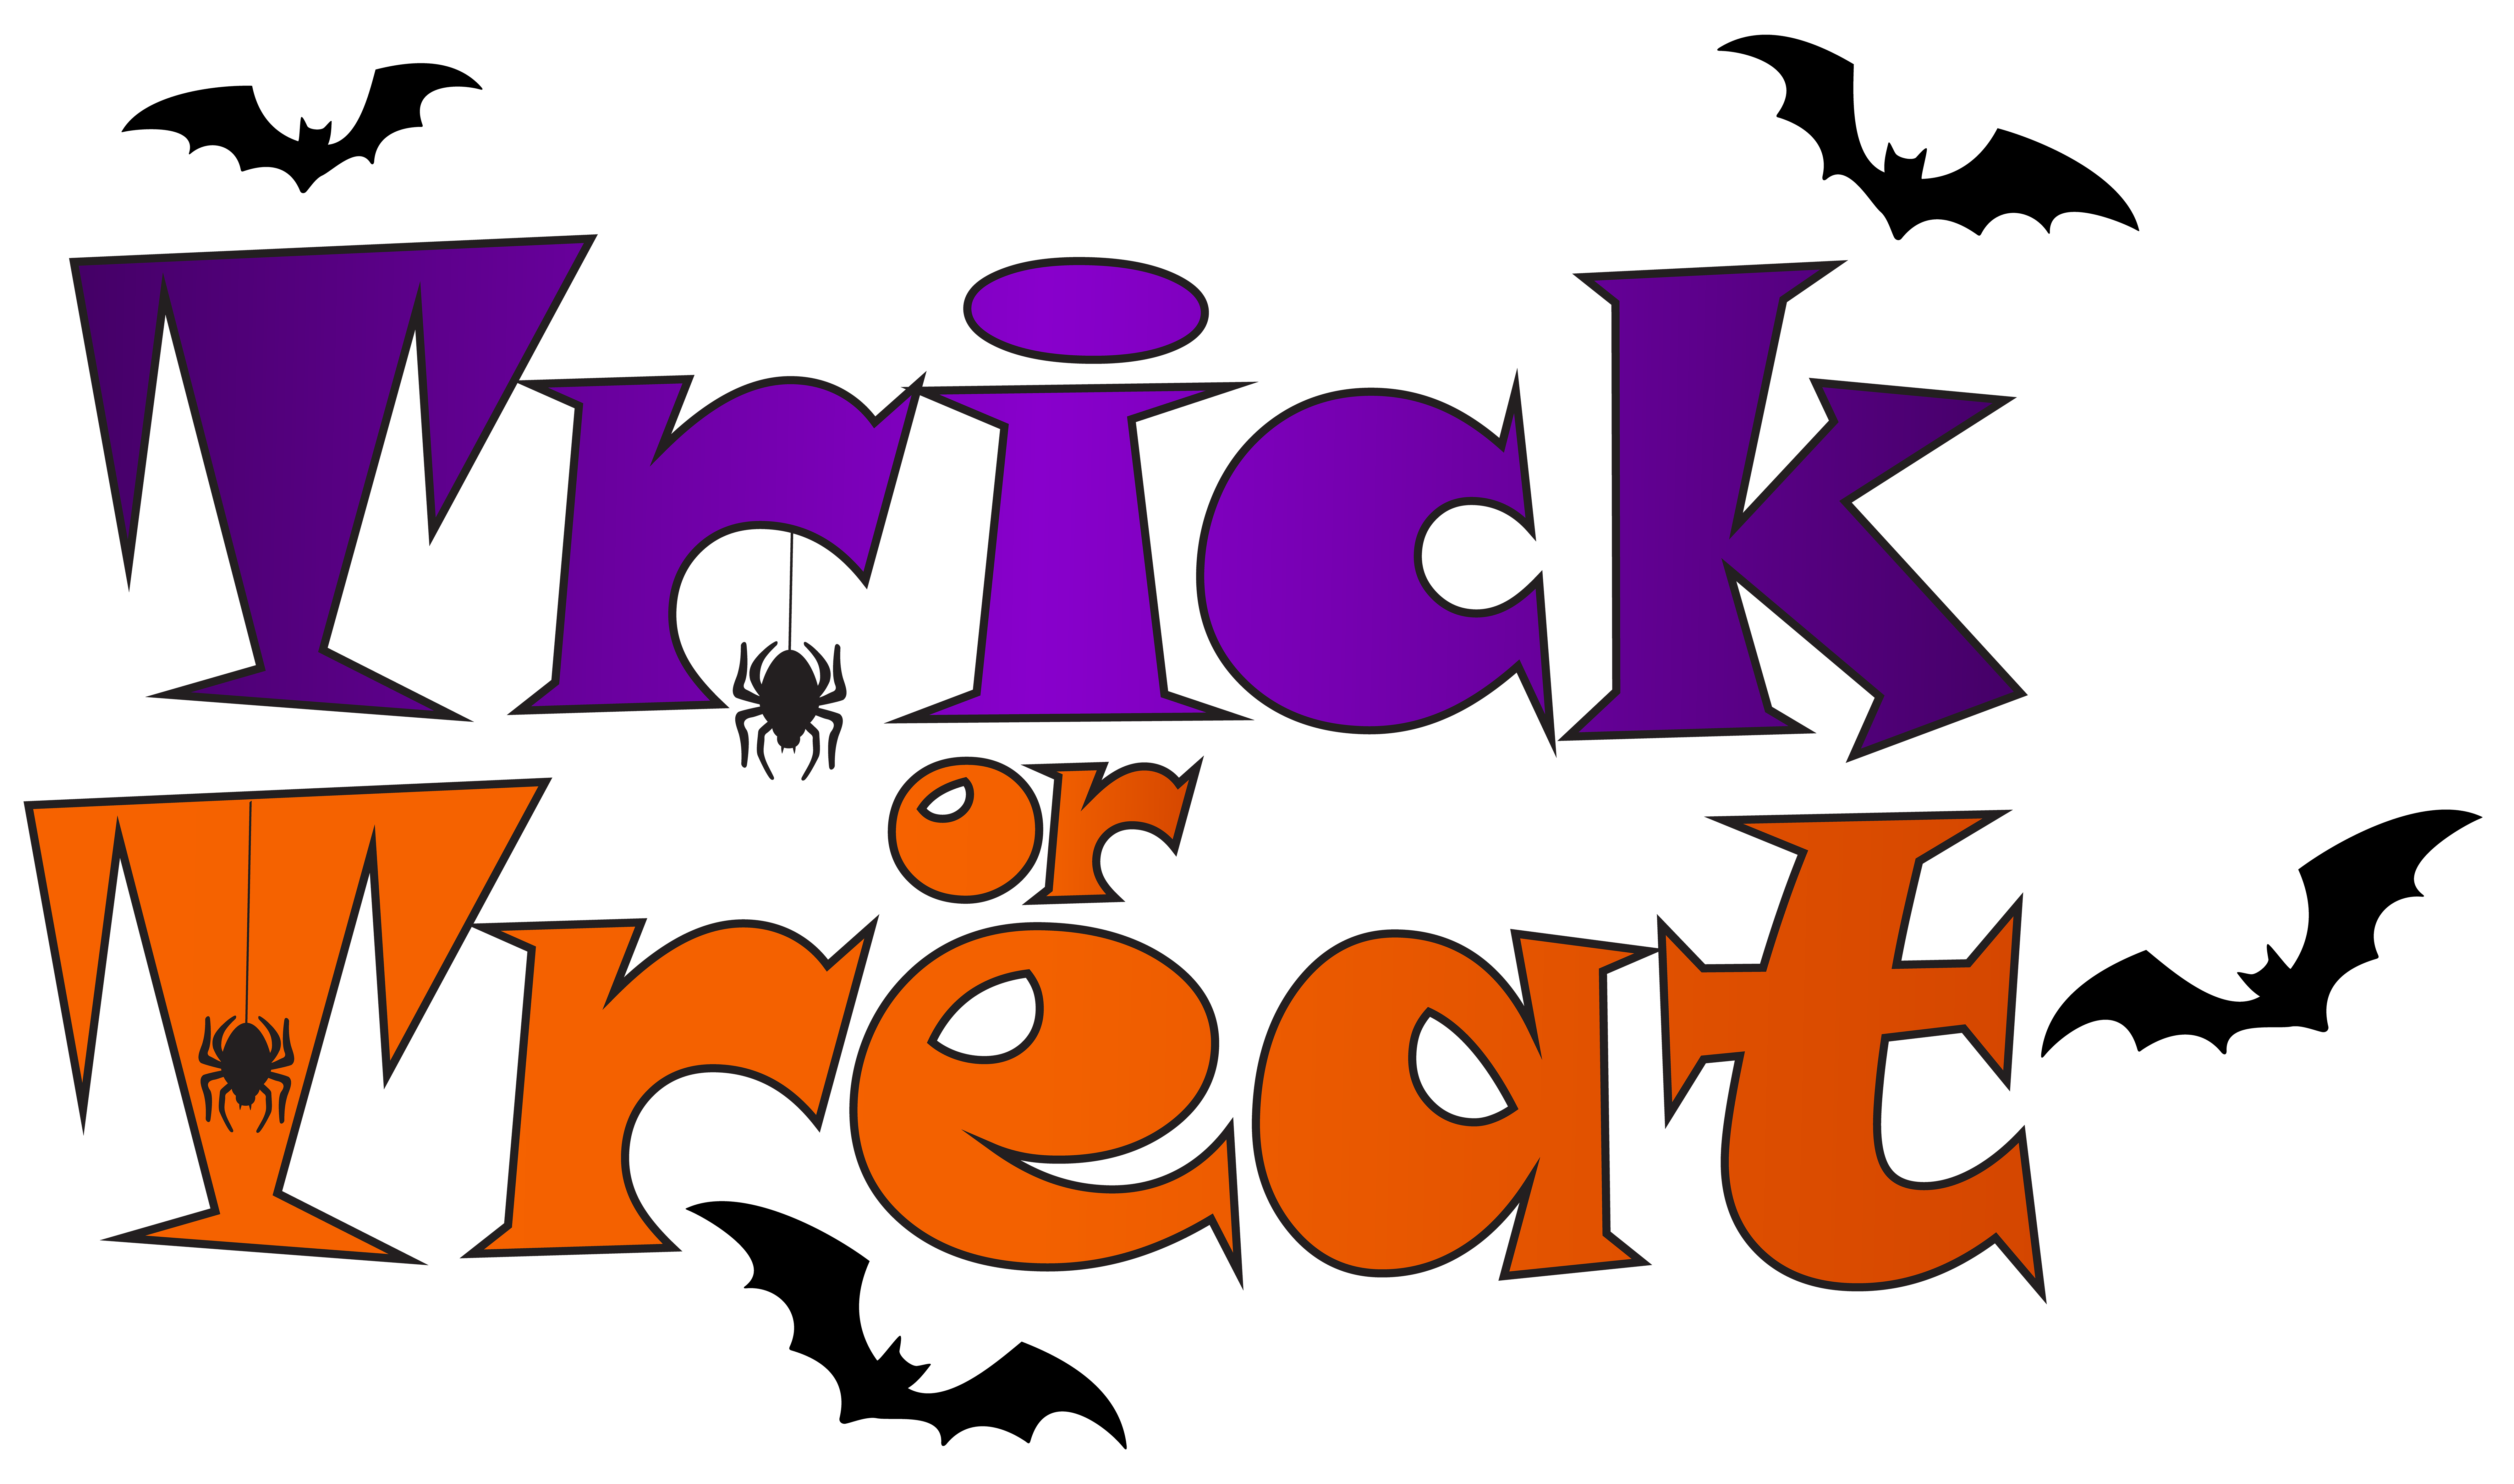 banner download Trick or treat clipart. Png clip art gallery